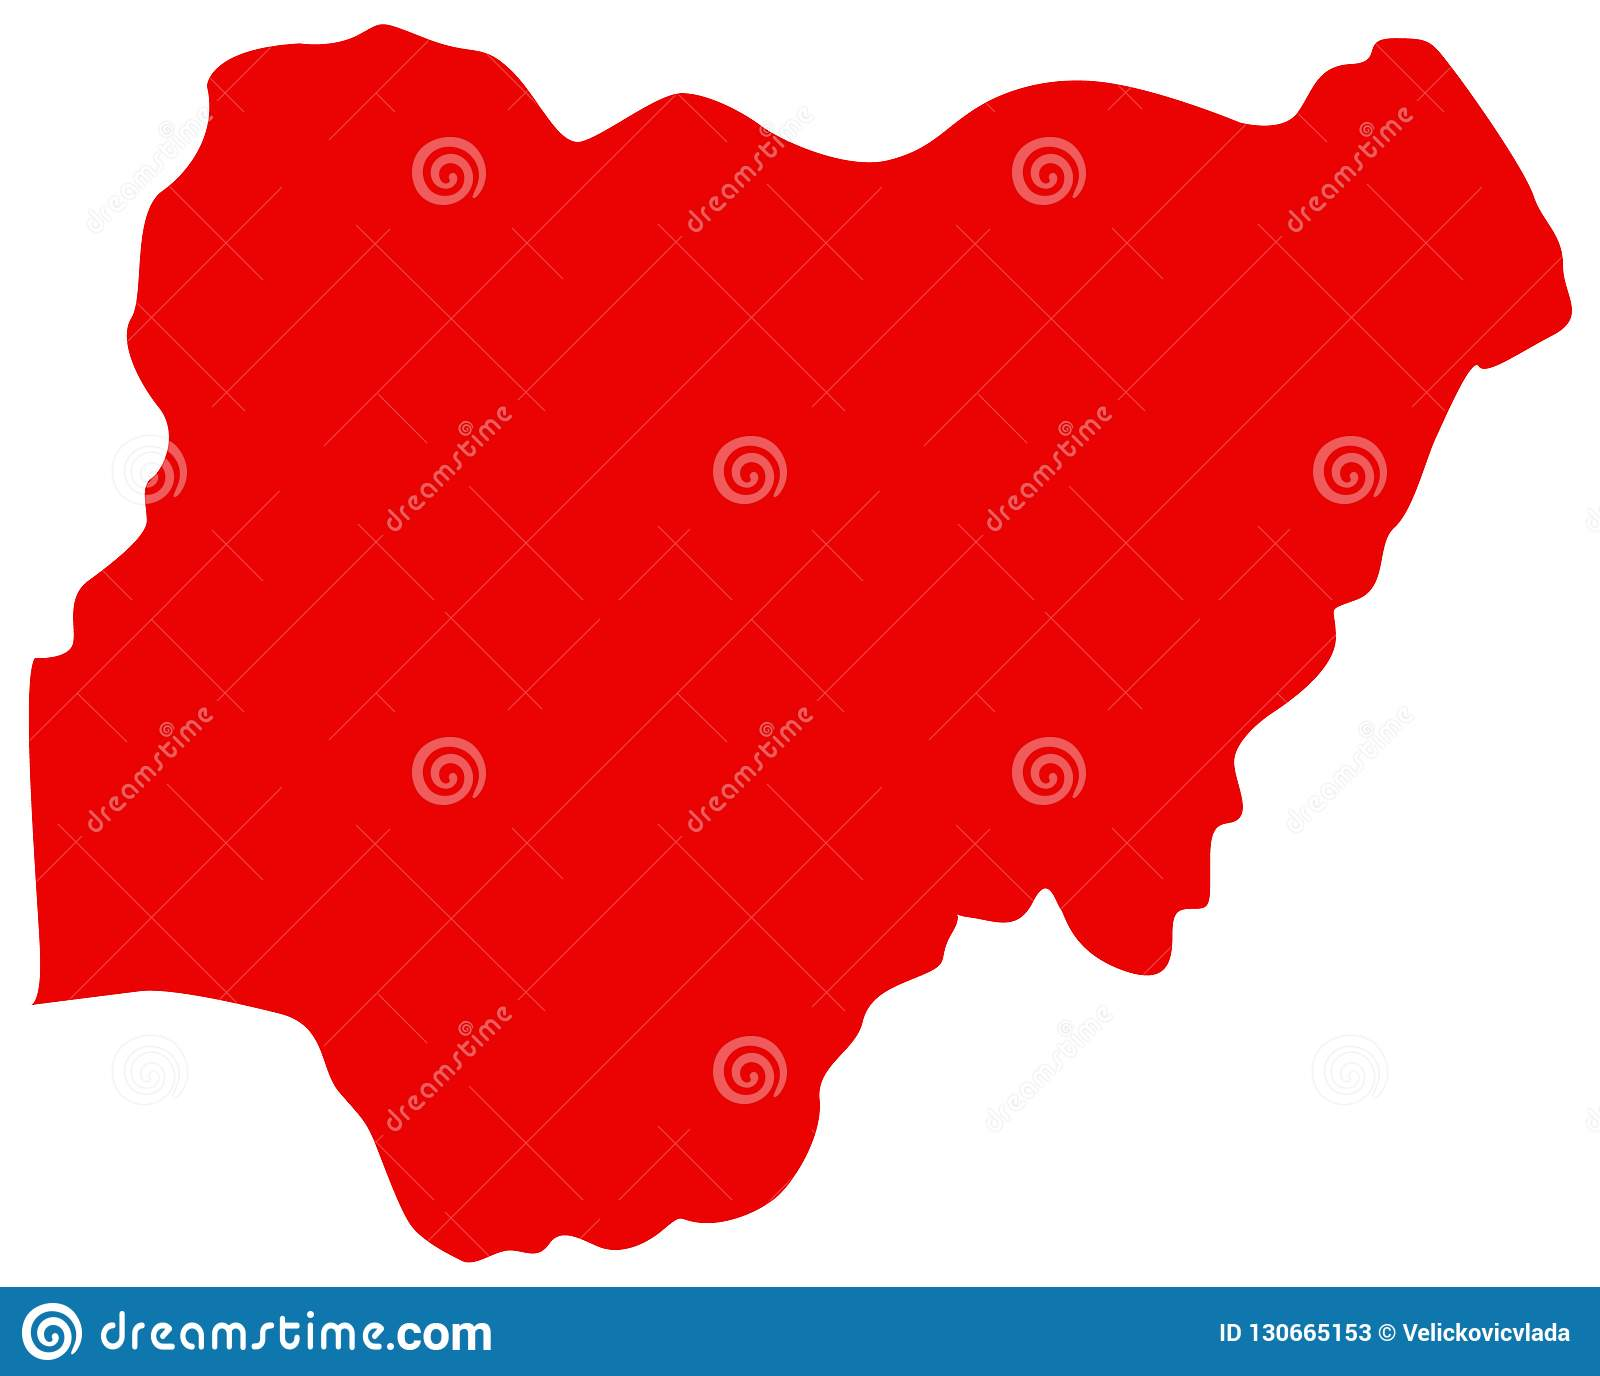 Nigeria Map - Country Between Central And West Africa Stock Vector ...